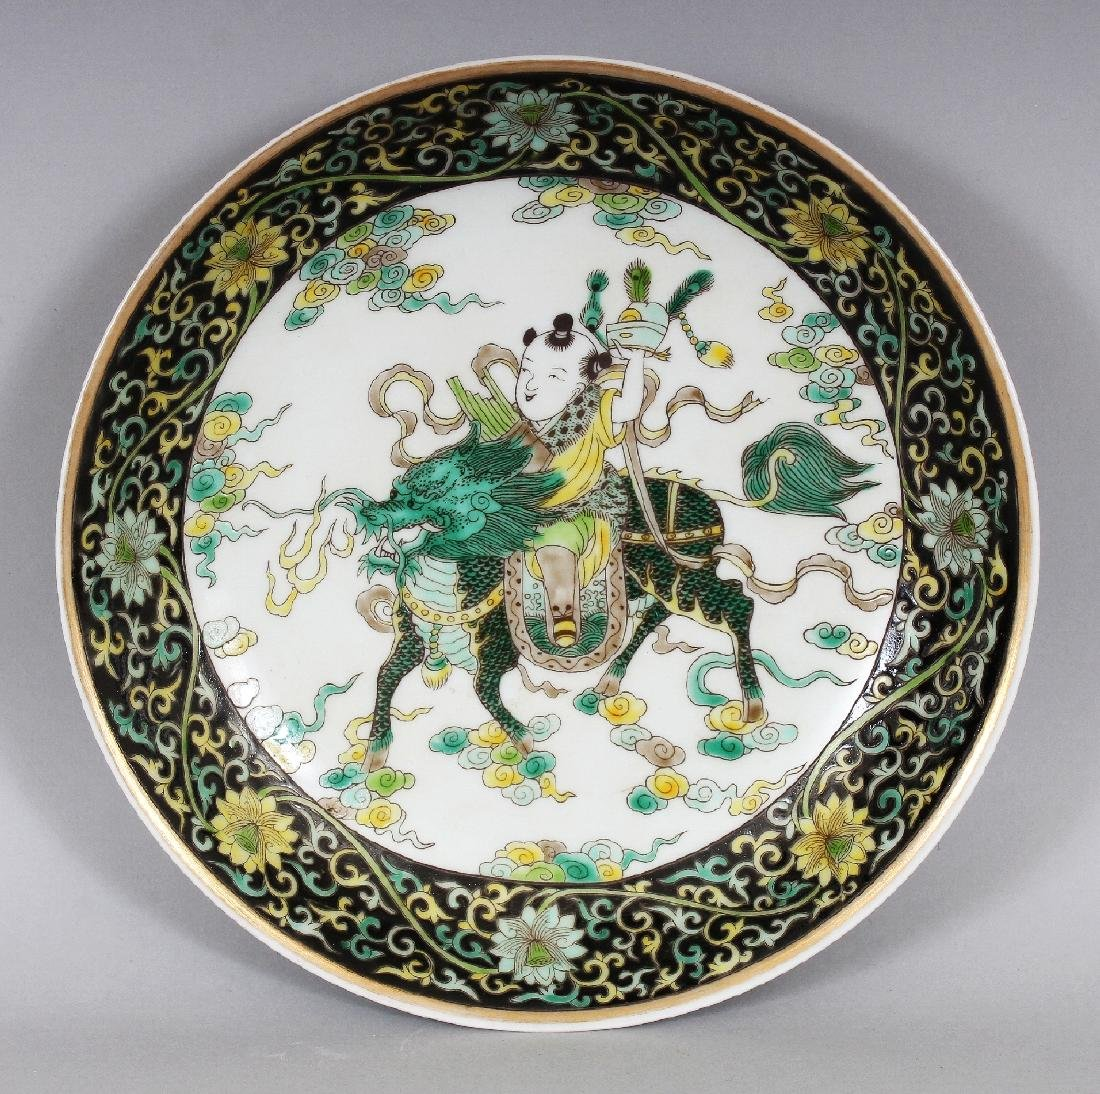 A CHINESE FAMILLE VERTE PORCELAIN SAUCER DISH, the